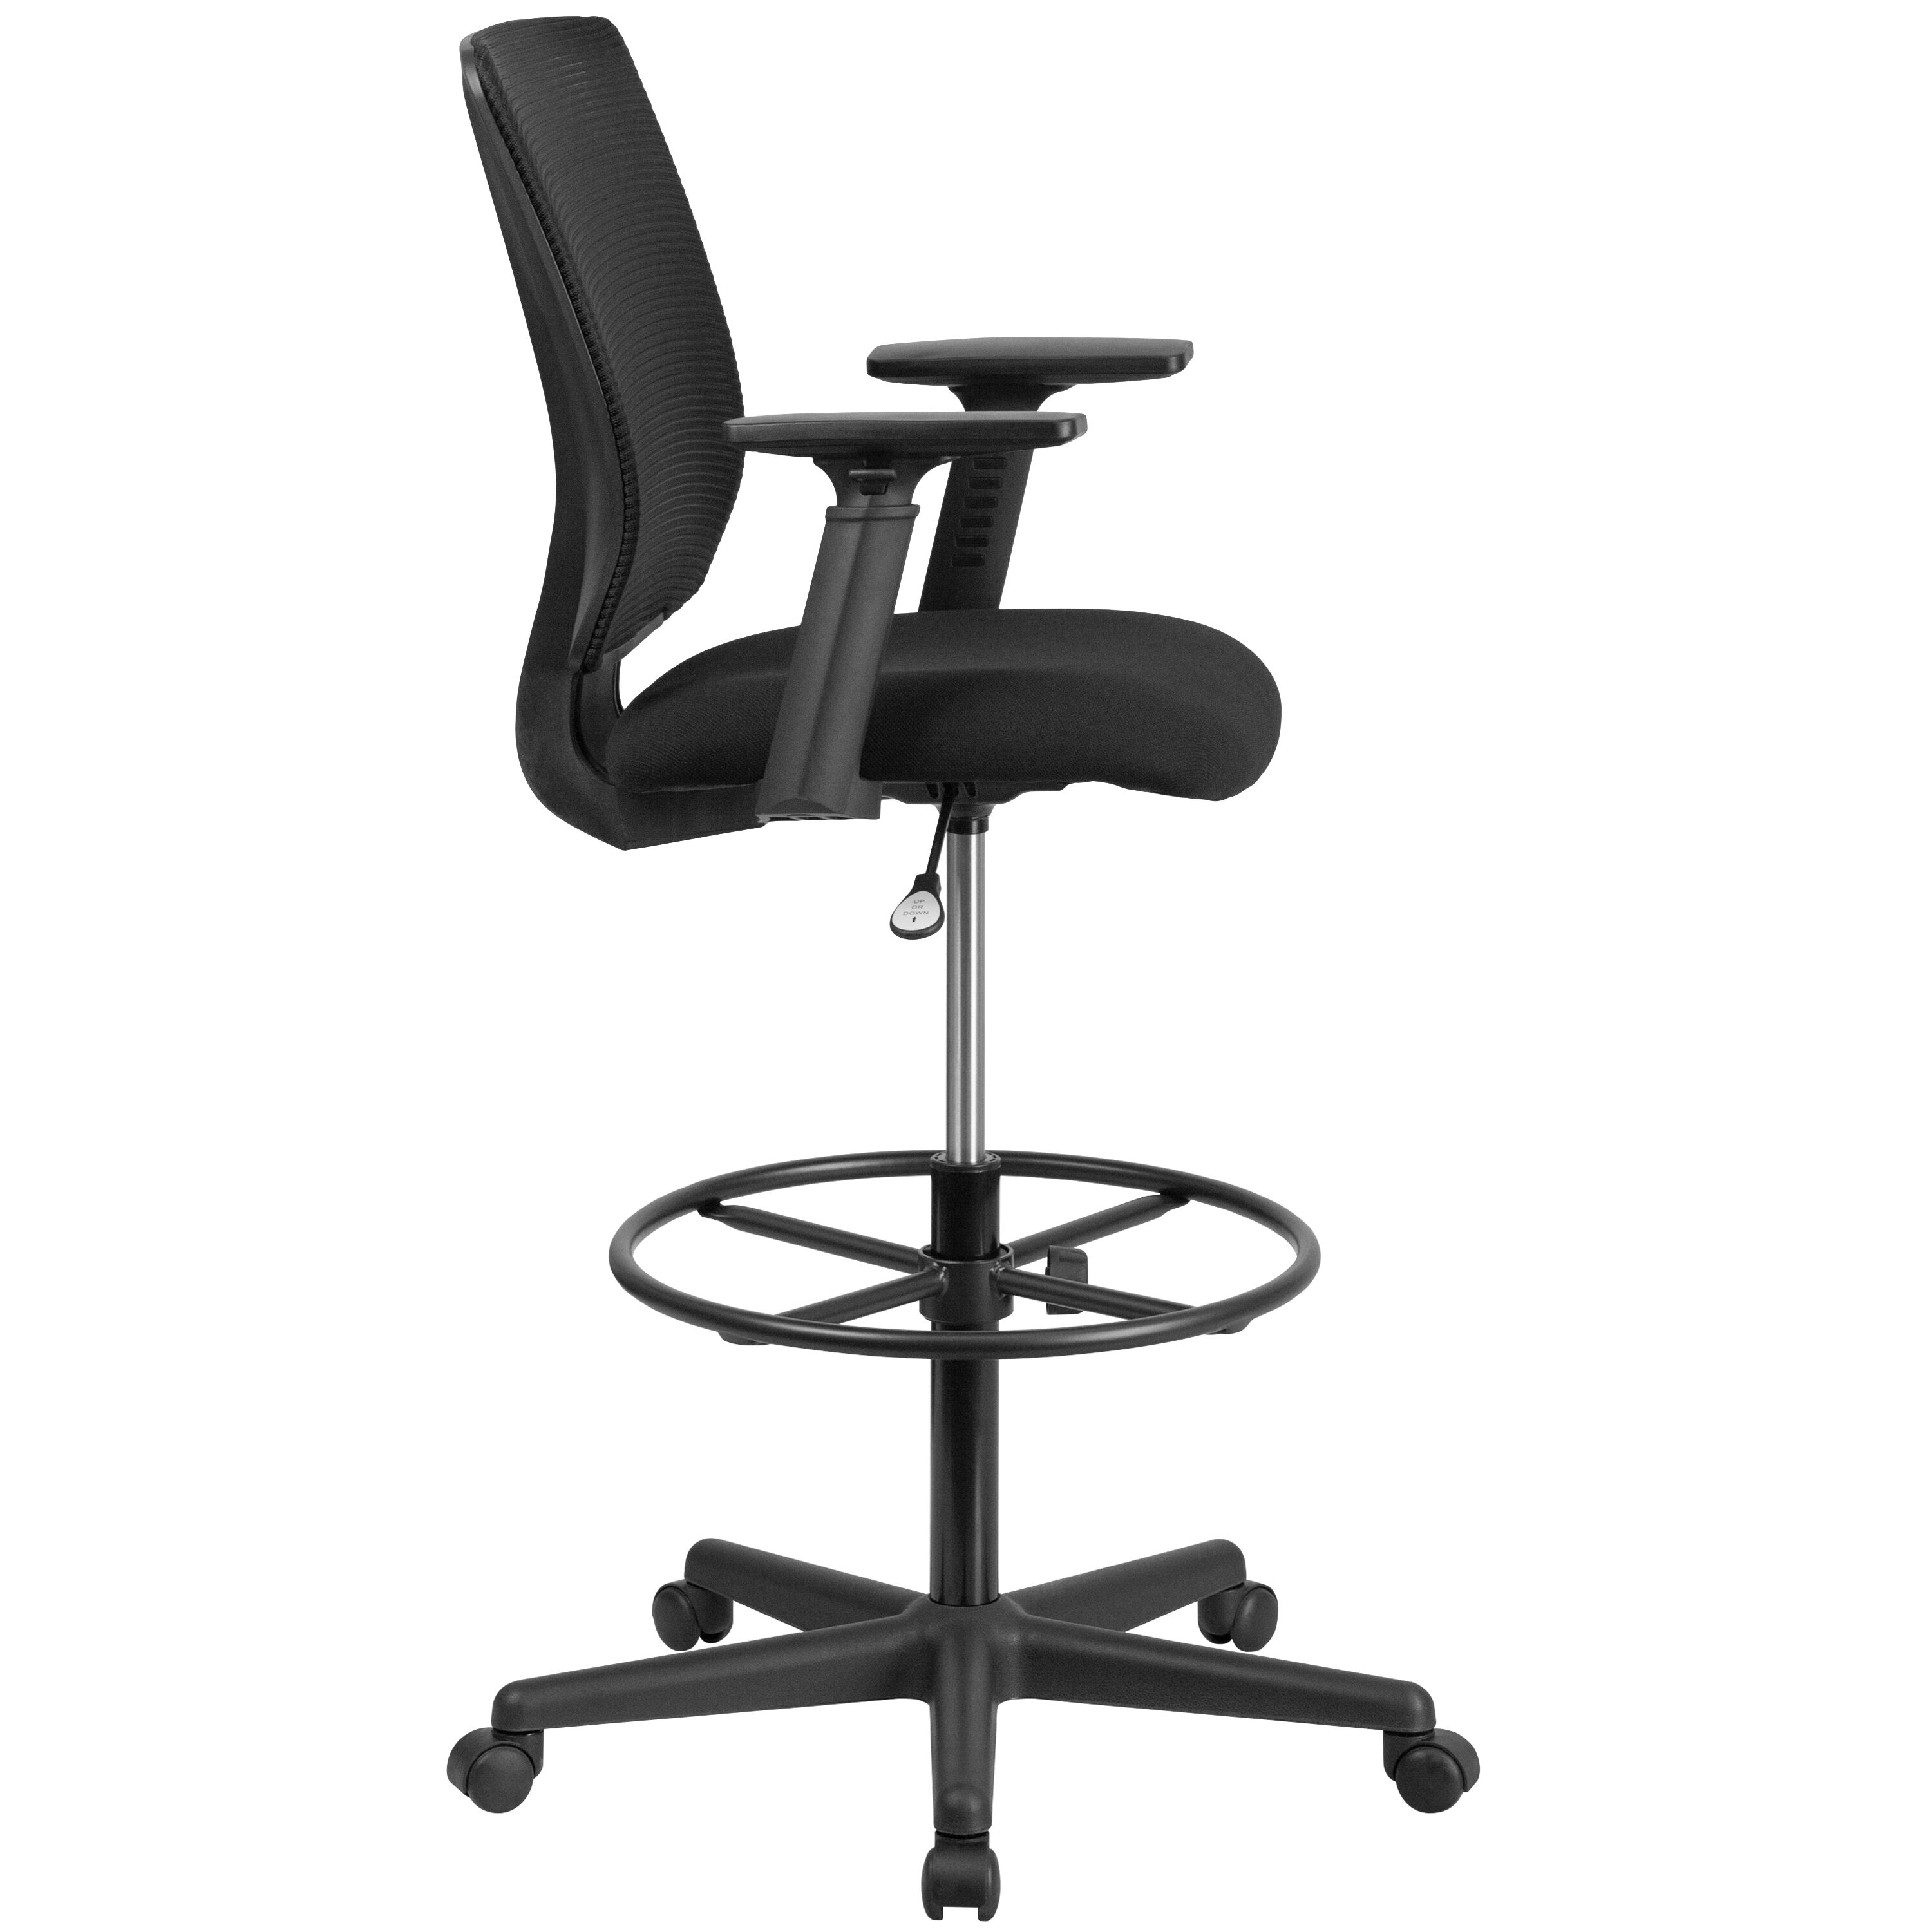 ... Our Ergonomic Mid Back Mesh Drafting Chair With Black Fabric Seat,  Adjustable Foot Ring ...